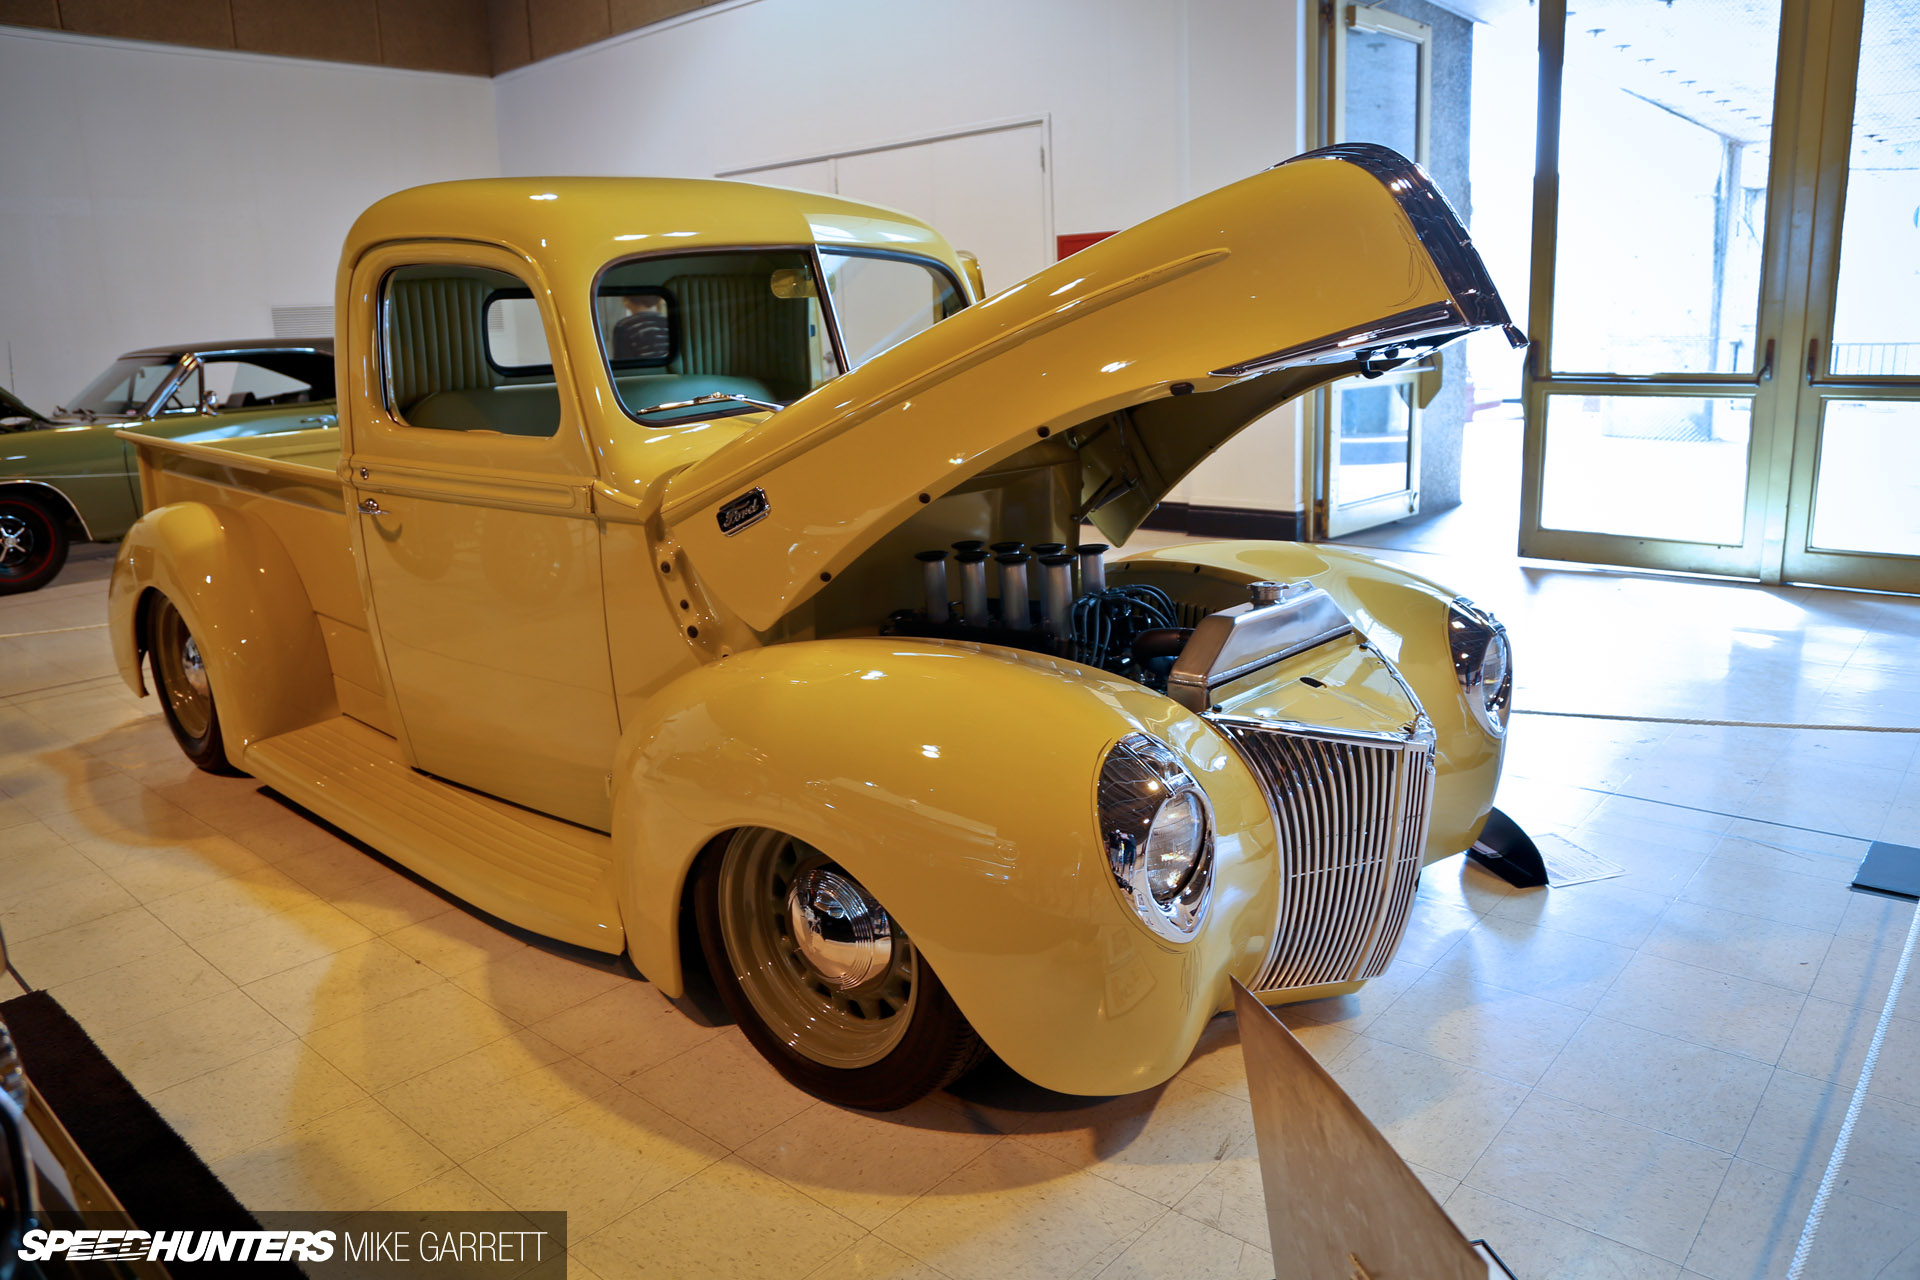 Simple Is Best The Hot Rod Hauler Anything Cars Car Enthusiasts 1941 Ford Truck To Me This Cruiser Exhibits Perfect Blend Of Vintage Styling And Modern Tricks All Wrapped Up In A Very Tasteful Package One First Things You